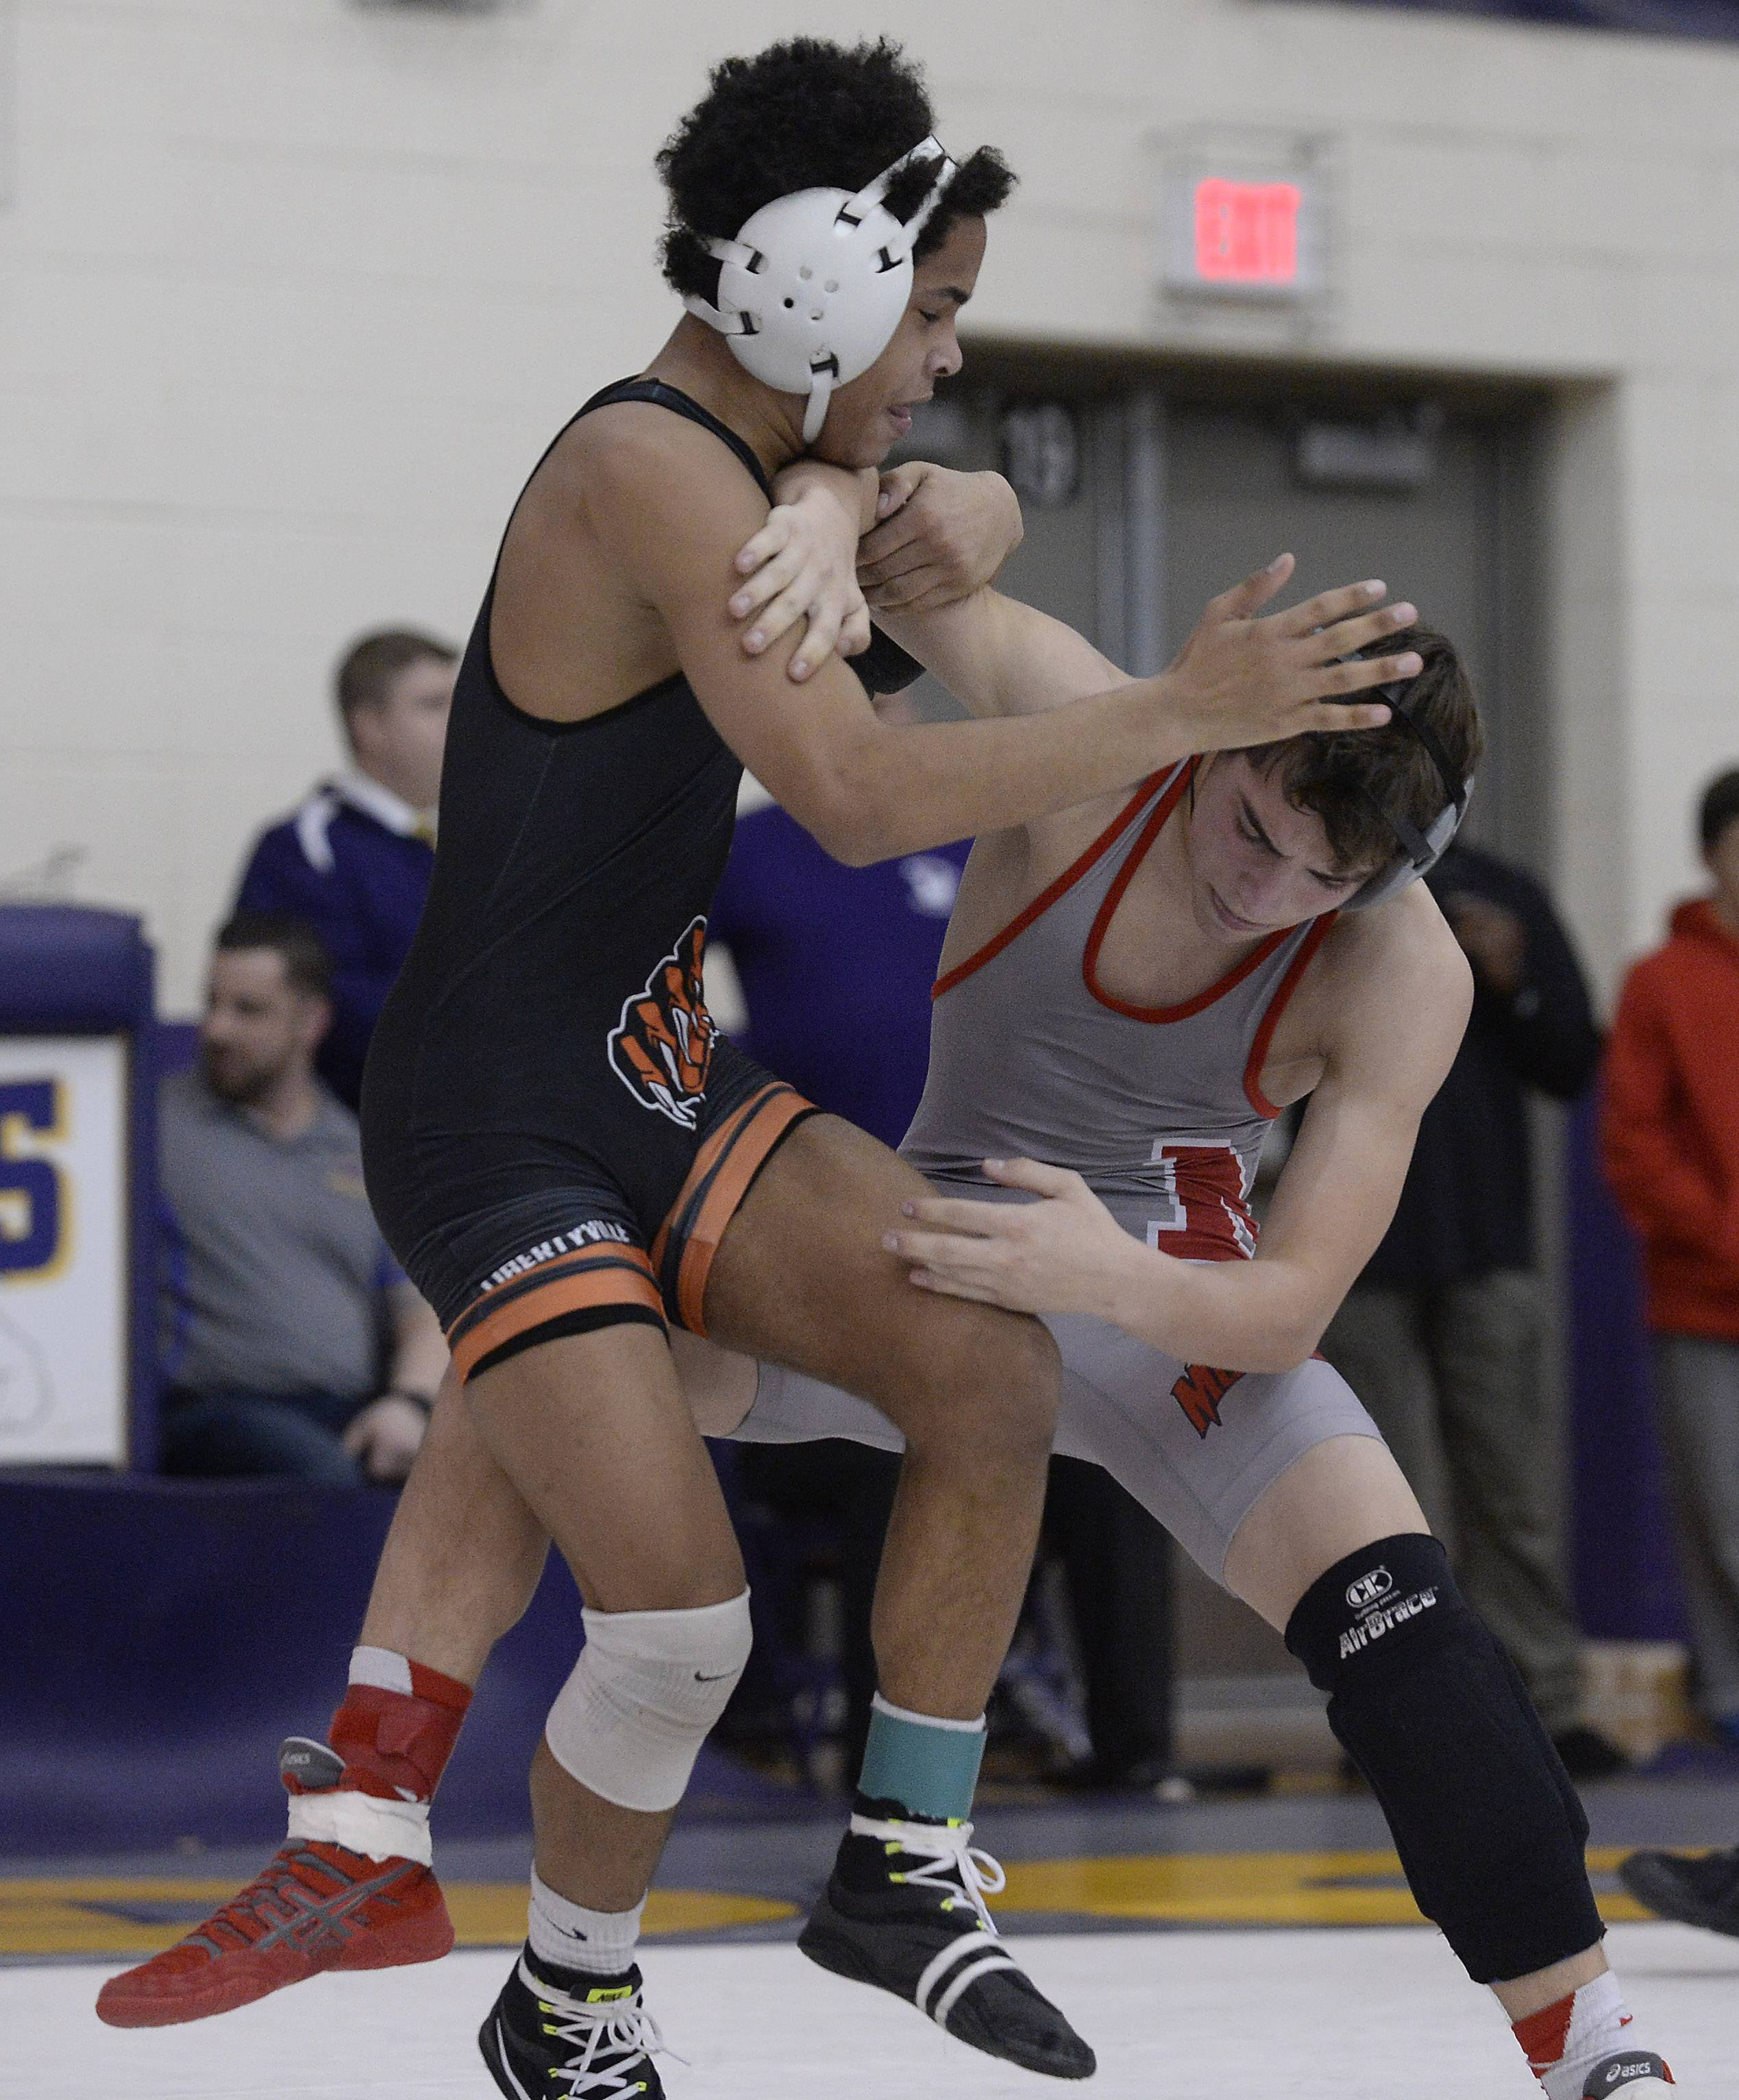 Alex Mitchell of Libertyville, left,  battles Dane Durlacher of Mundelein for the win at 106 pounds during the North Suburban Conference tournament in Wauconda on Saturday.